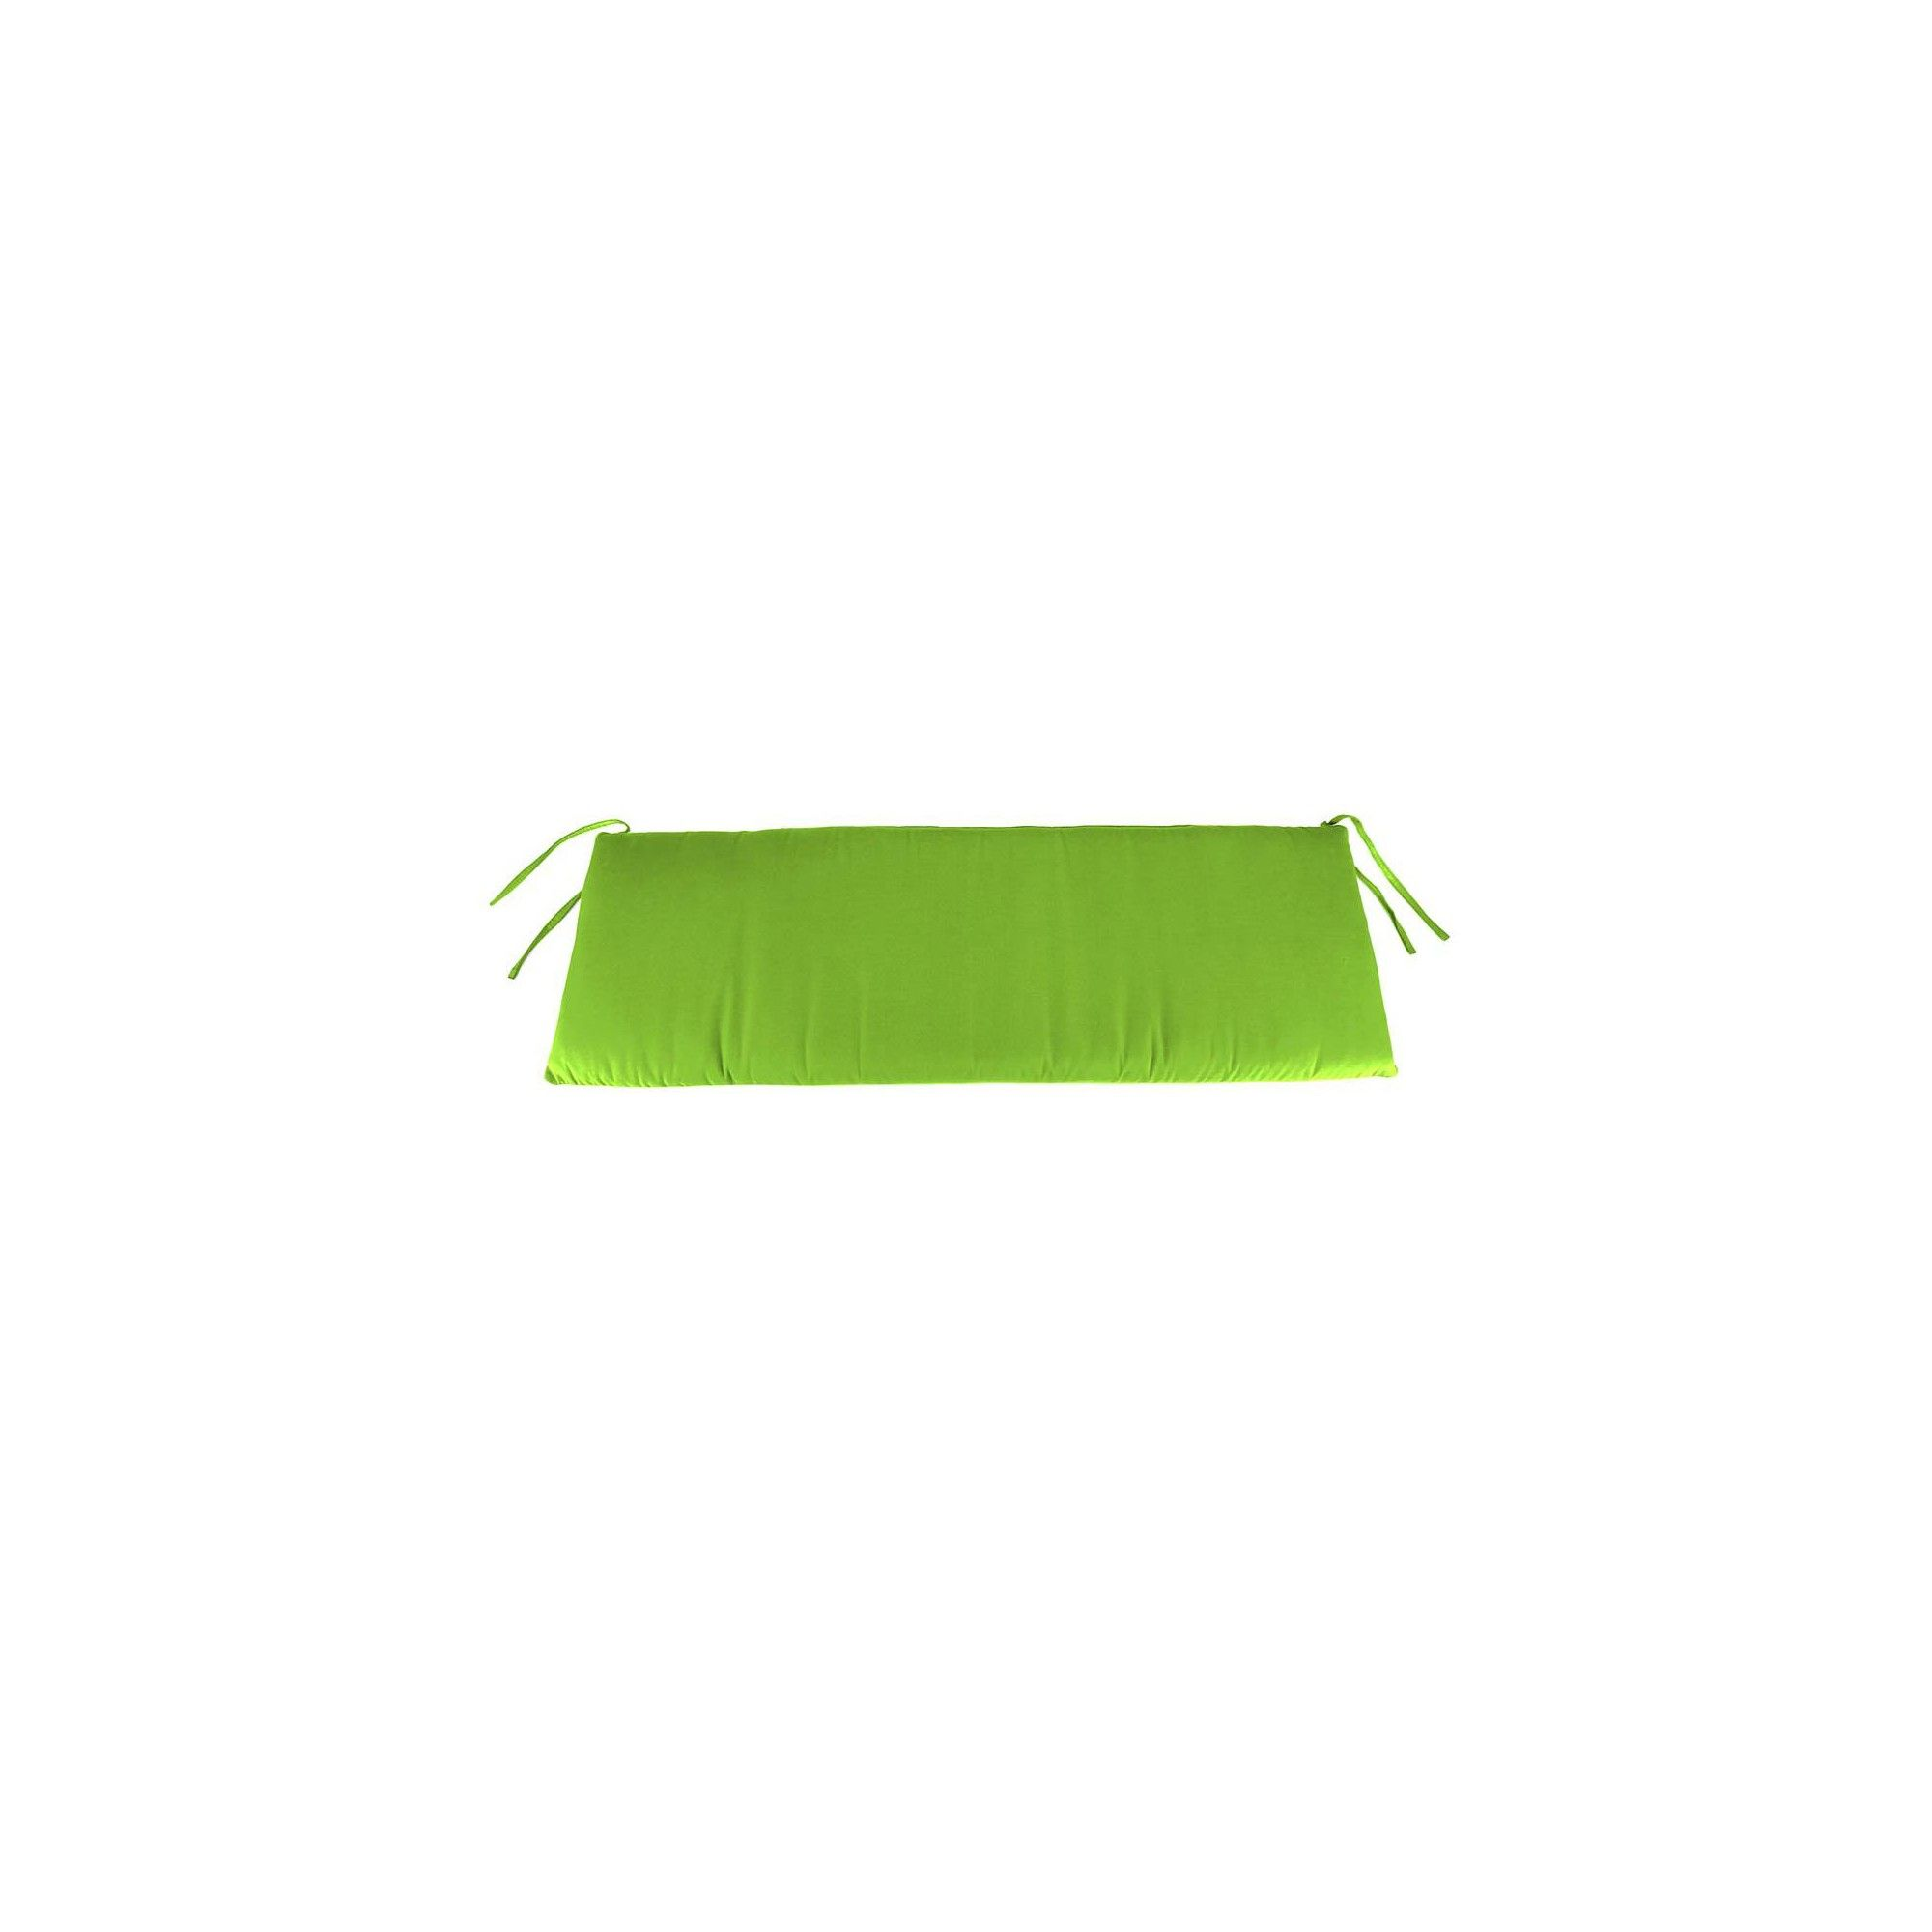 Weather Resistant Outdoor Cushion For Swing Bench 36 X 16 Greenery Plow Hearth